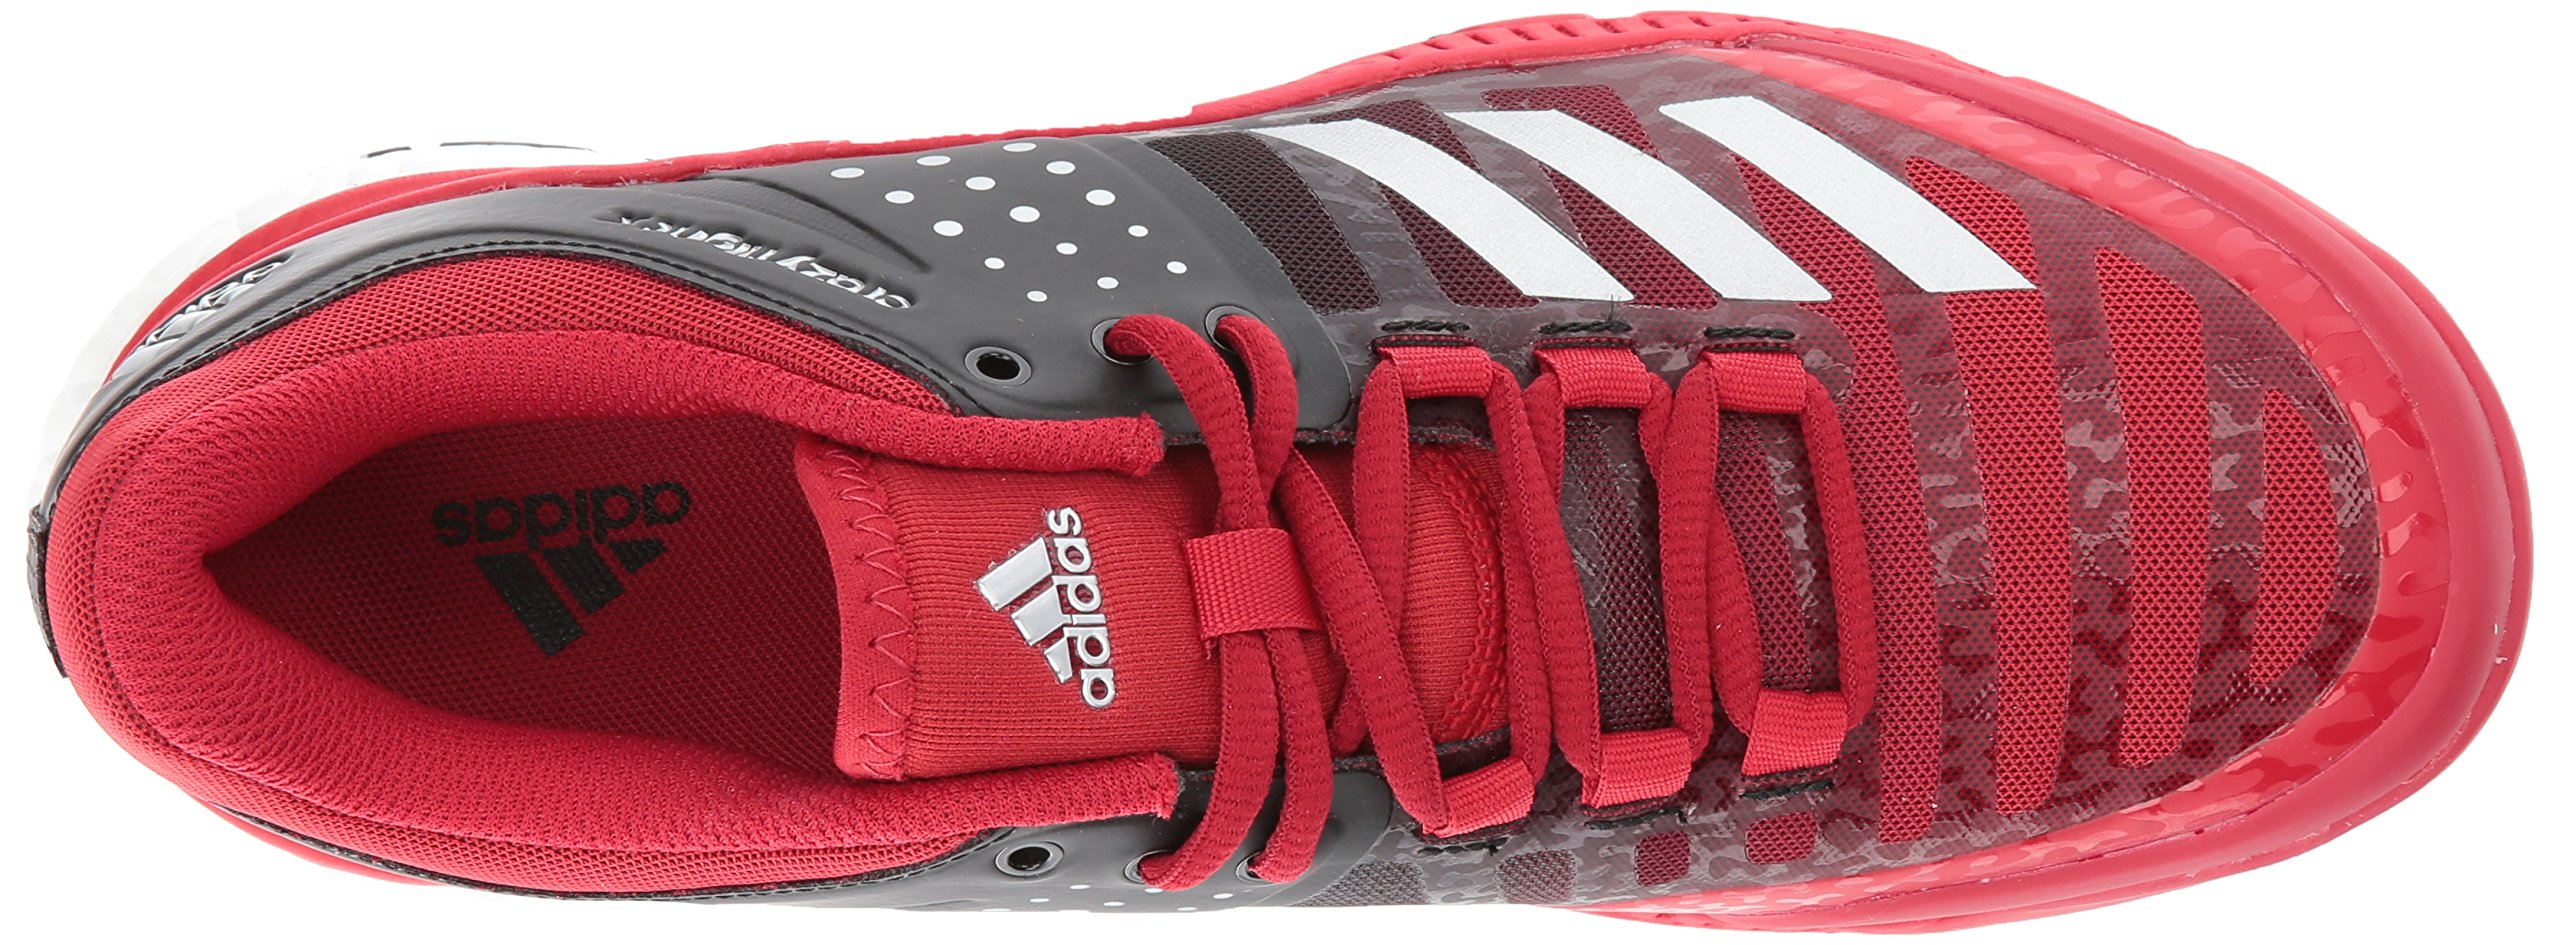 Adidas Women's Shoes Crazyflight X Volleyball Shoe Black/Metallic Silver/Power Red,7.5 by adidas Originals (Image #8)